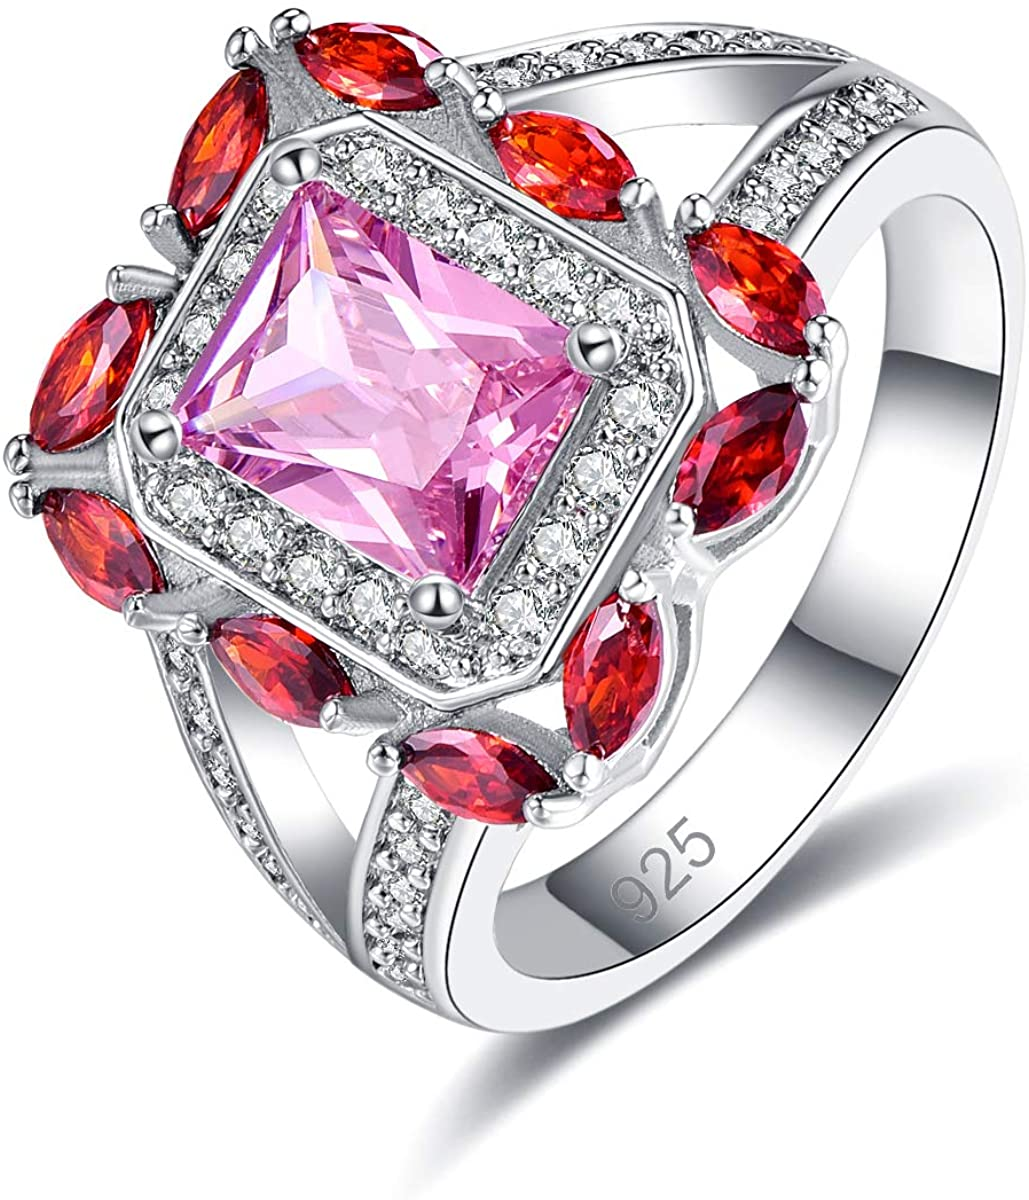 Emsione 925 Sterling Silver Plated Created Rainbow Topaz Womens Ring Best Gift for Women Girls